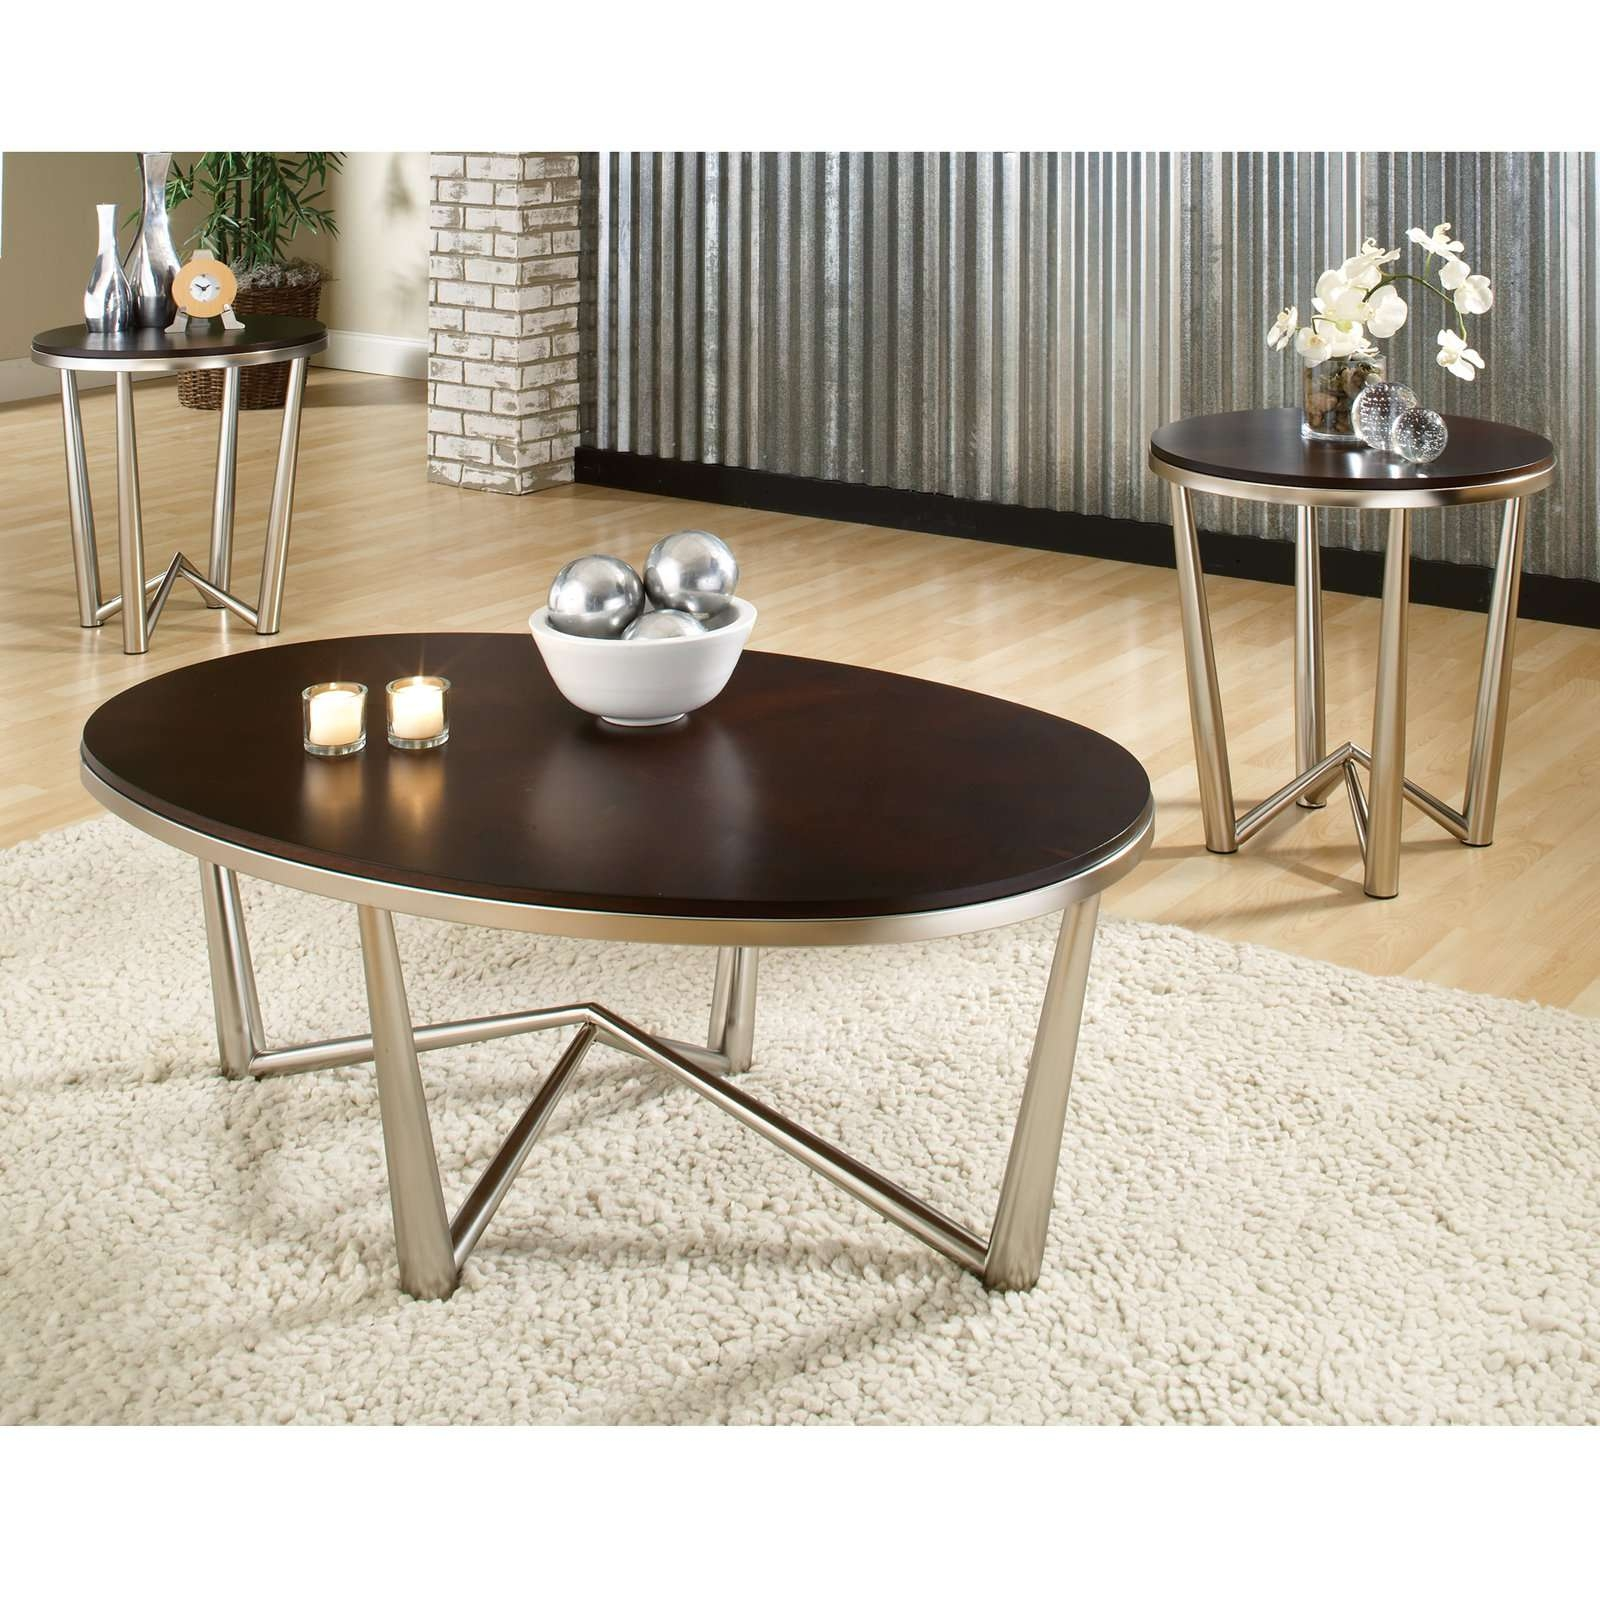 Coffee Table : 3 Coffee Table Set My Existing Coffee Table In Regarding 2017 Coffee Tables With Oval Shape (View 14 of 20)